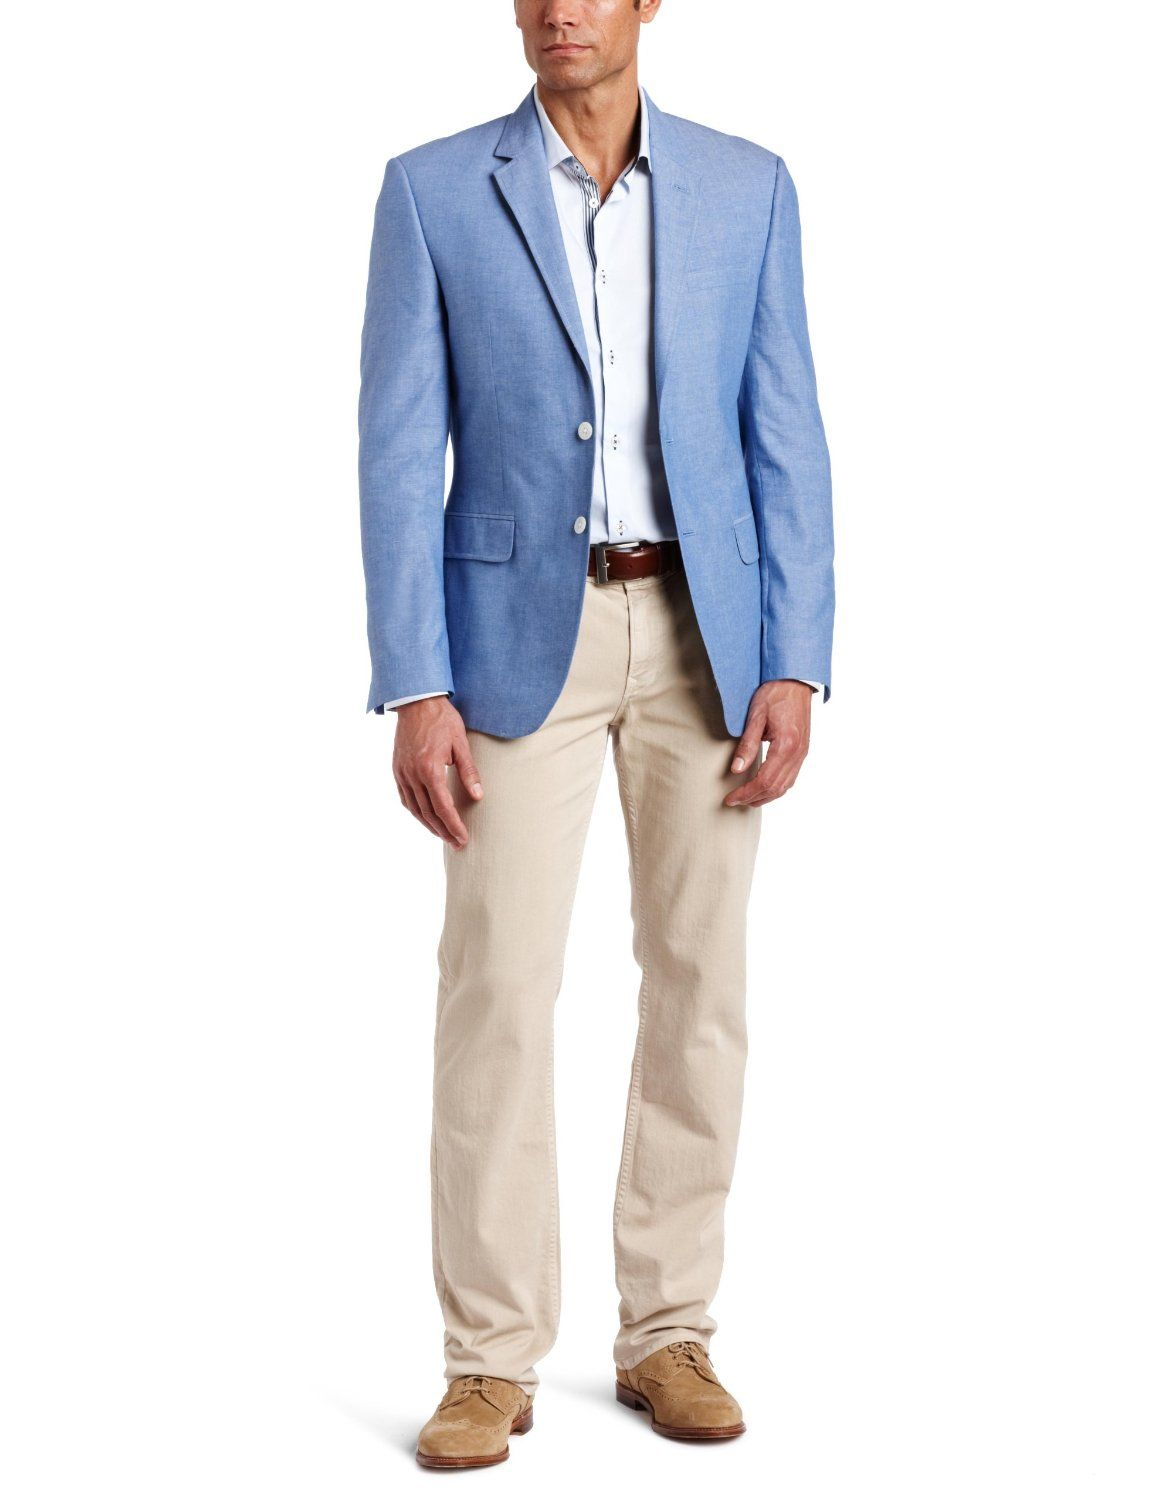 sports coat and jeans Google Search Sports coat and